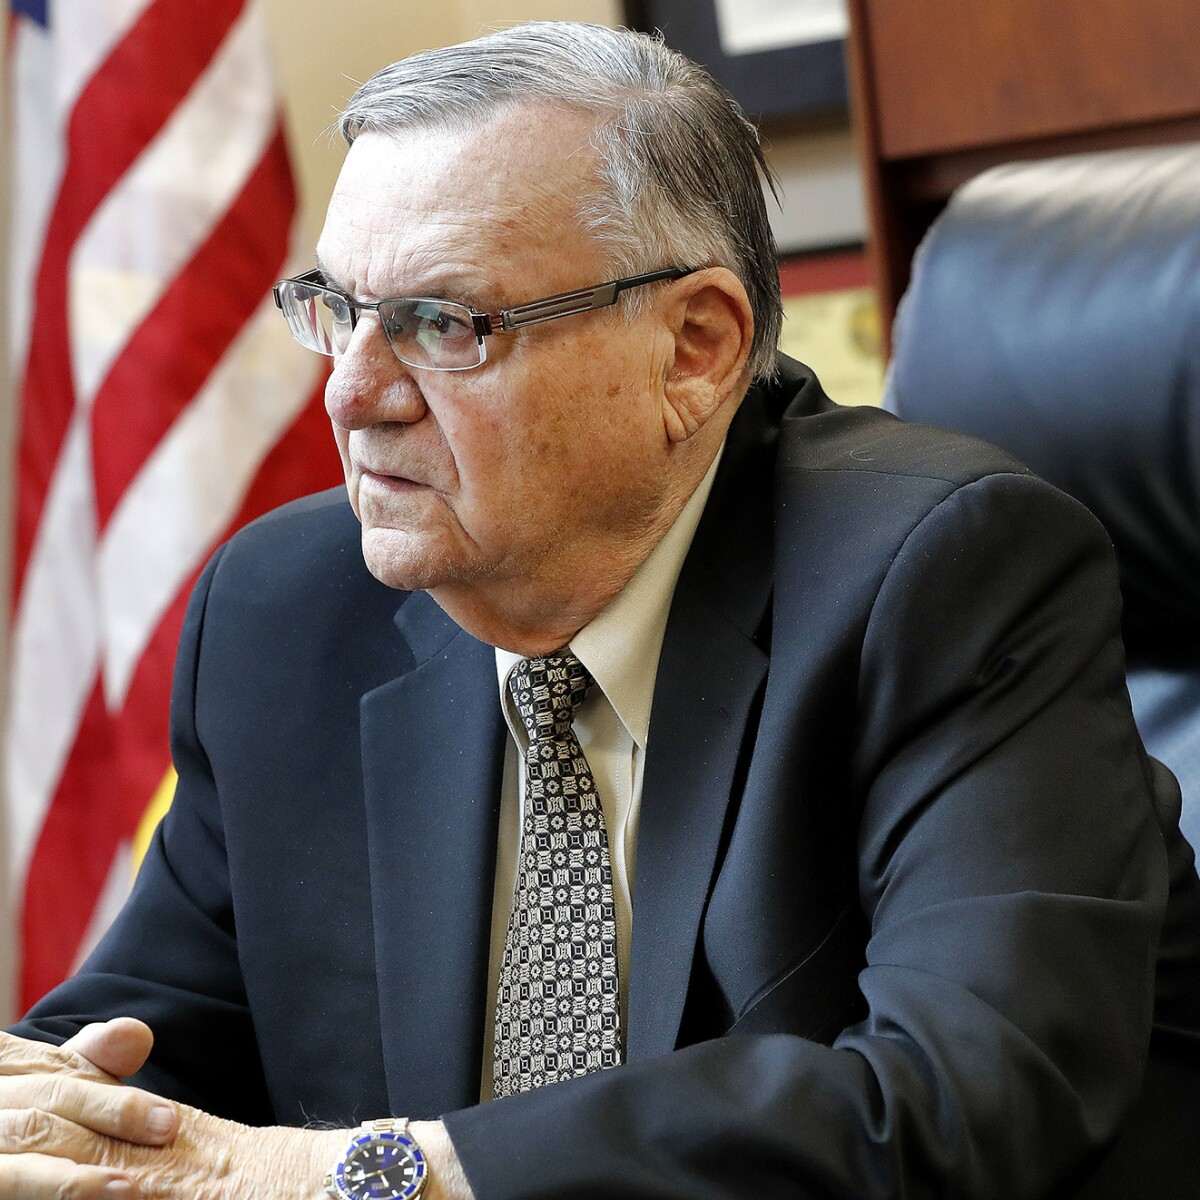 Senate candidate joe arpaio feds should focus on obamas birth senate candidate joe arpaio feds should focus on obamas birth certificate instead of russia 1betcityfo Gallery